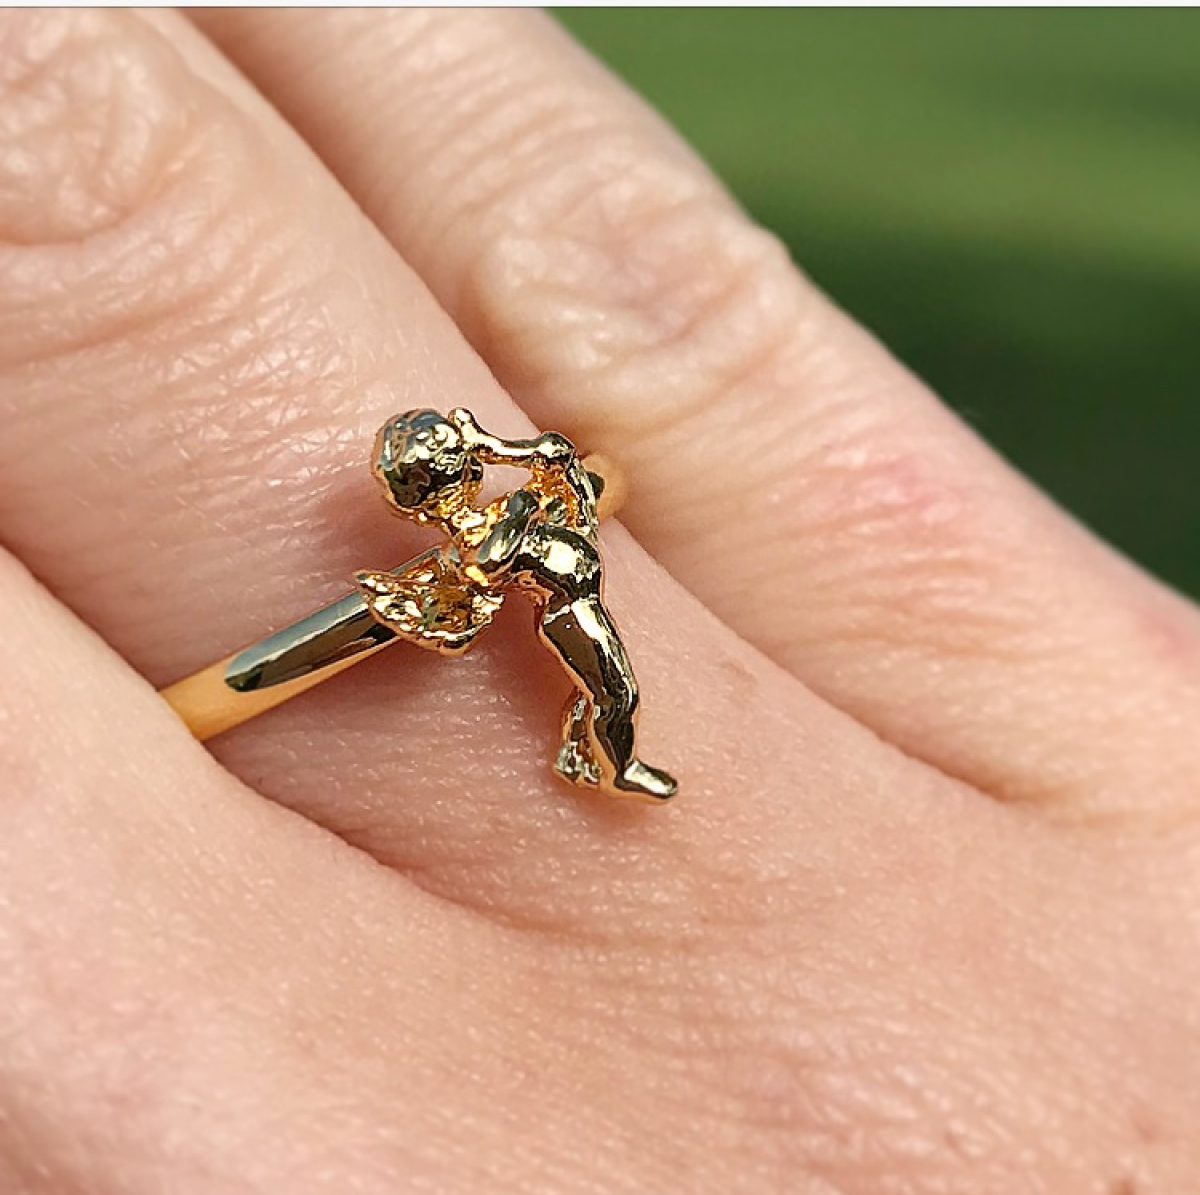 Archive Mini Cherub Ring - Gold - Small Size Only